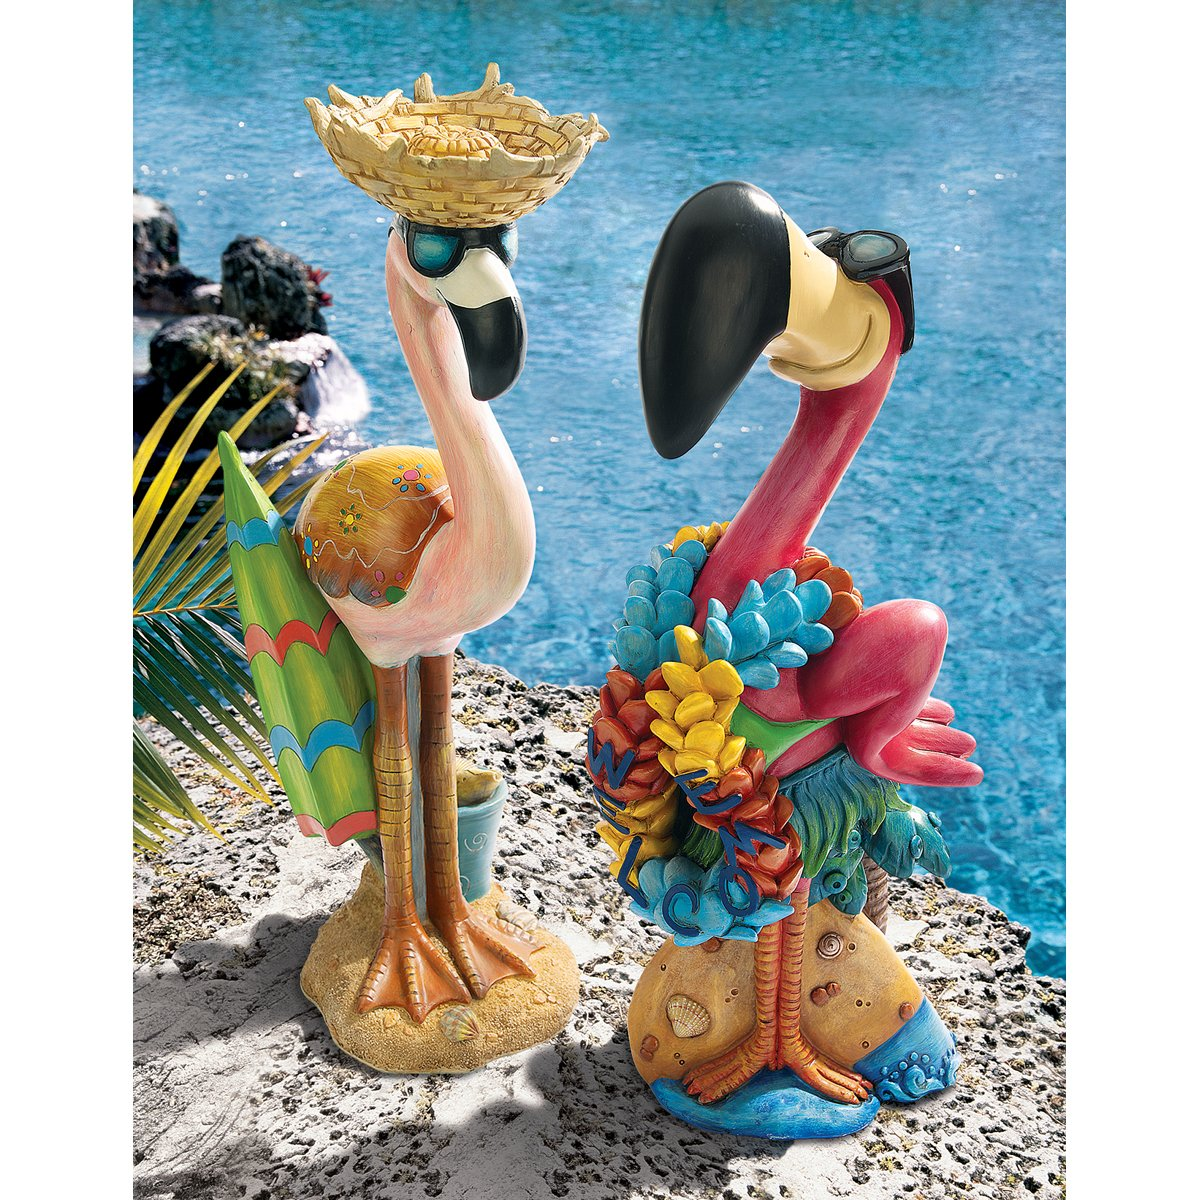 Superior Amazon.com : Design Toscano Pink Flamingo Garden Statues Luau Larry And  Flamingo Frank, Multicolored : Garden U0026 Outdoor